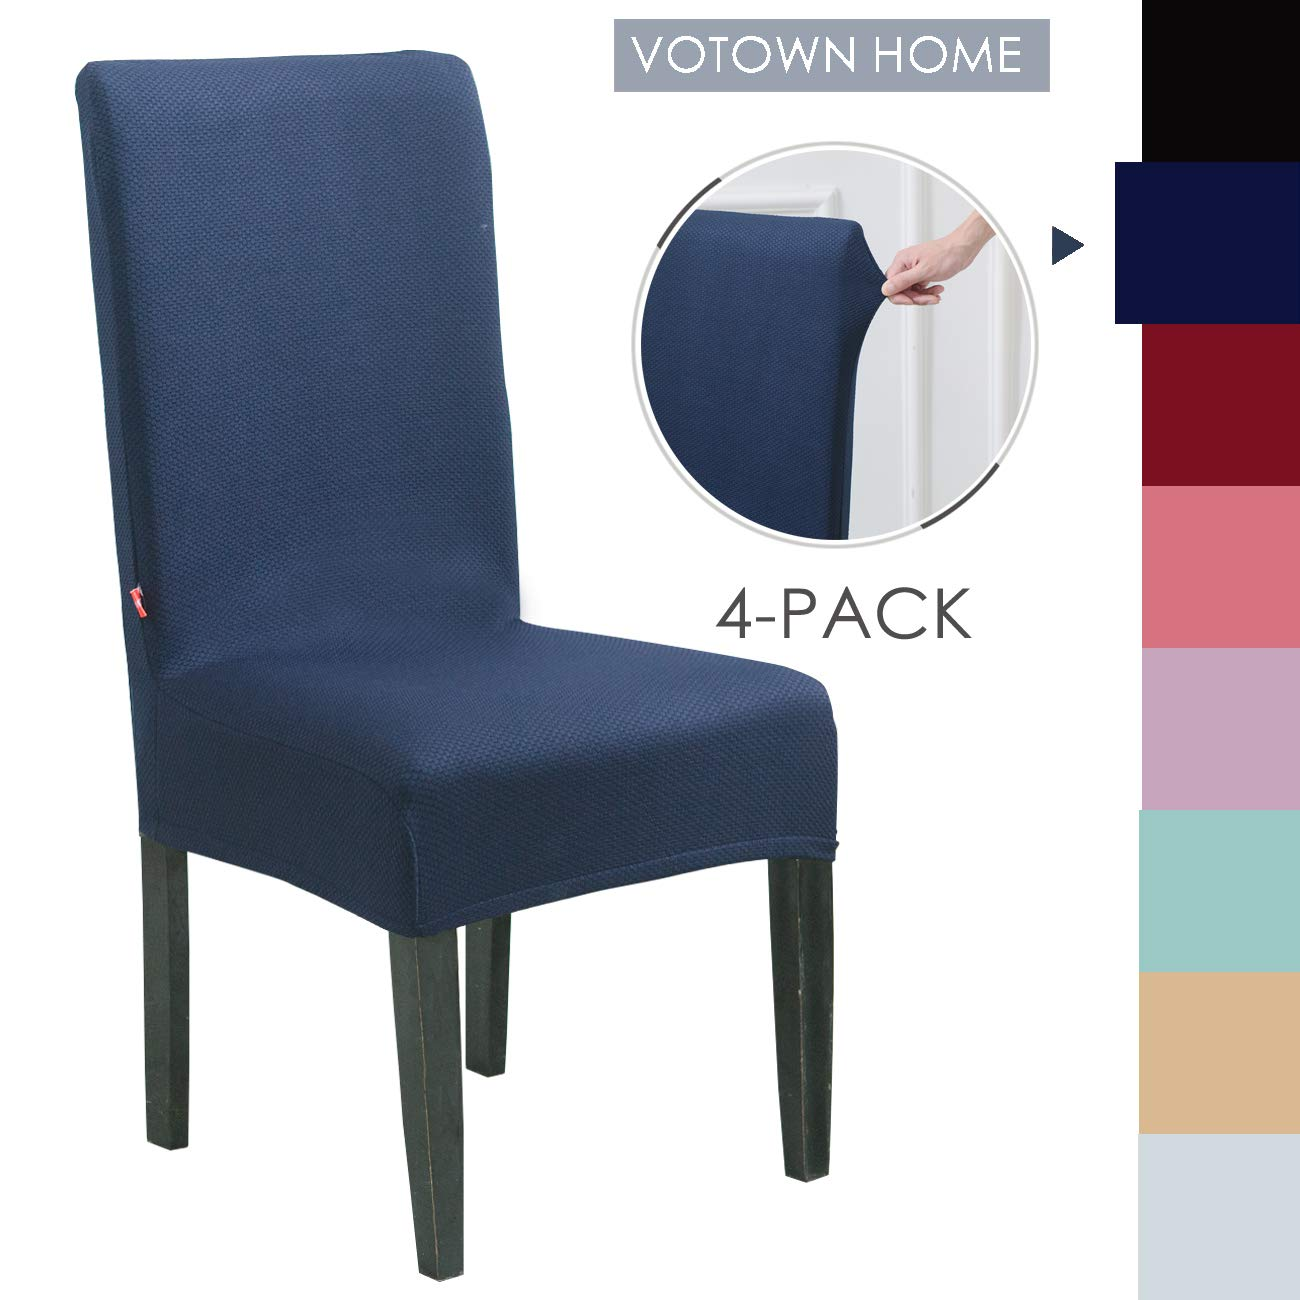 Votown Home Dining Room Chair Slipcovers Spandex Stretch fabric Home Decor Set of 2, Beige CC002-8